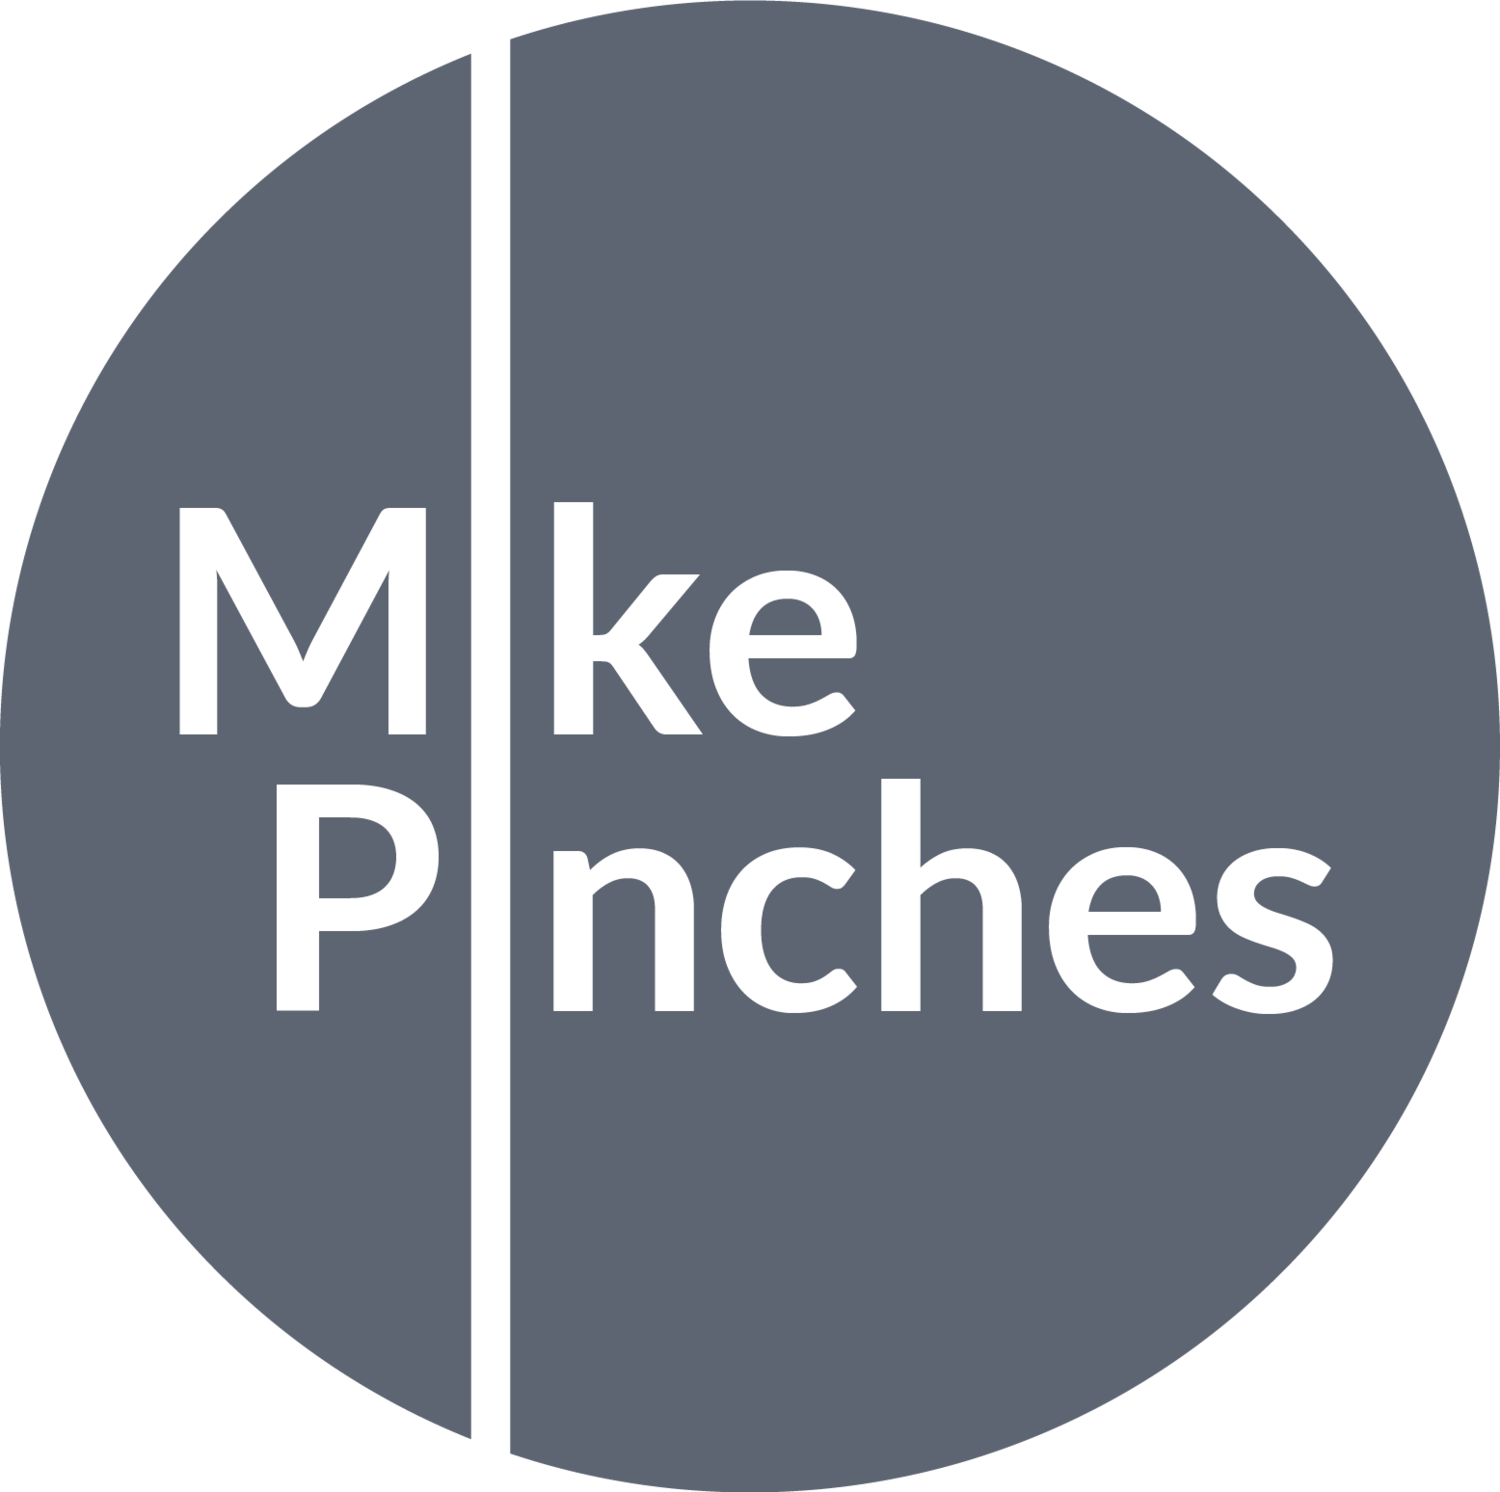 Mike Pinches